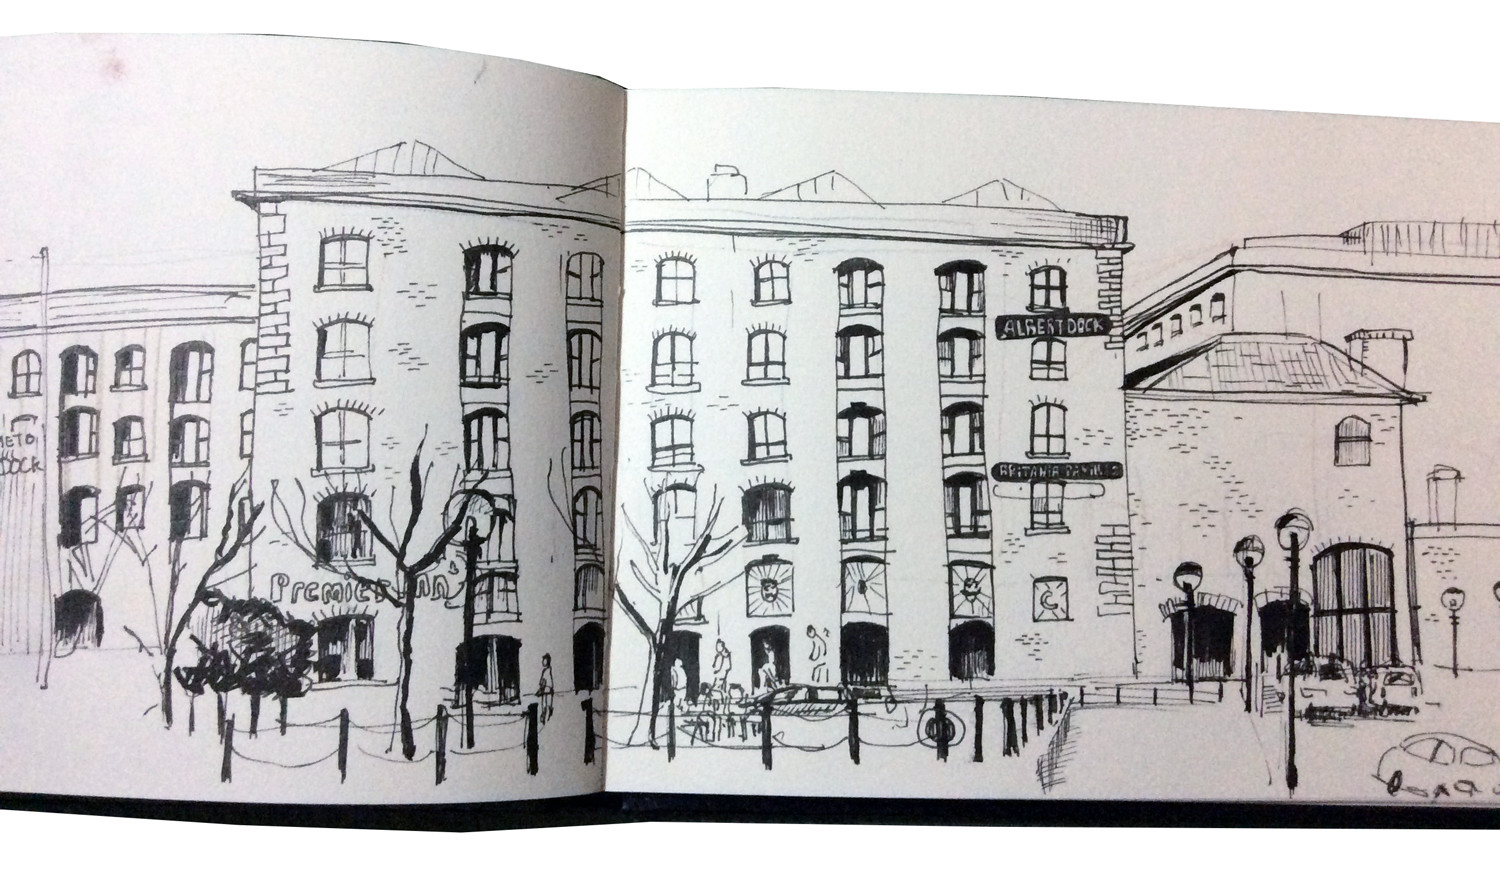 Pen drawing of the Albert Dock in Liverpool by Sophie Peanut